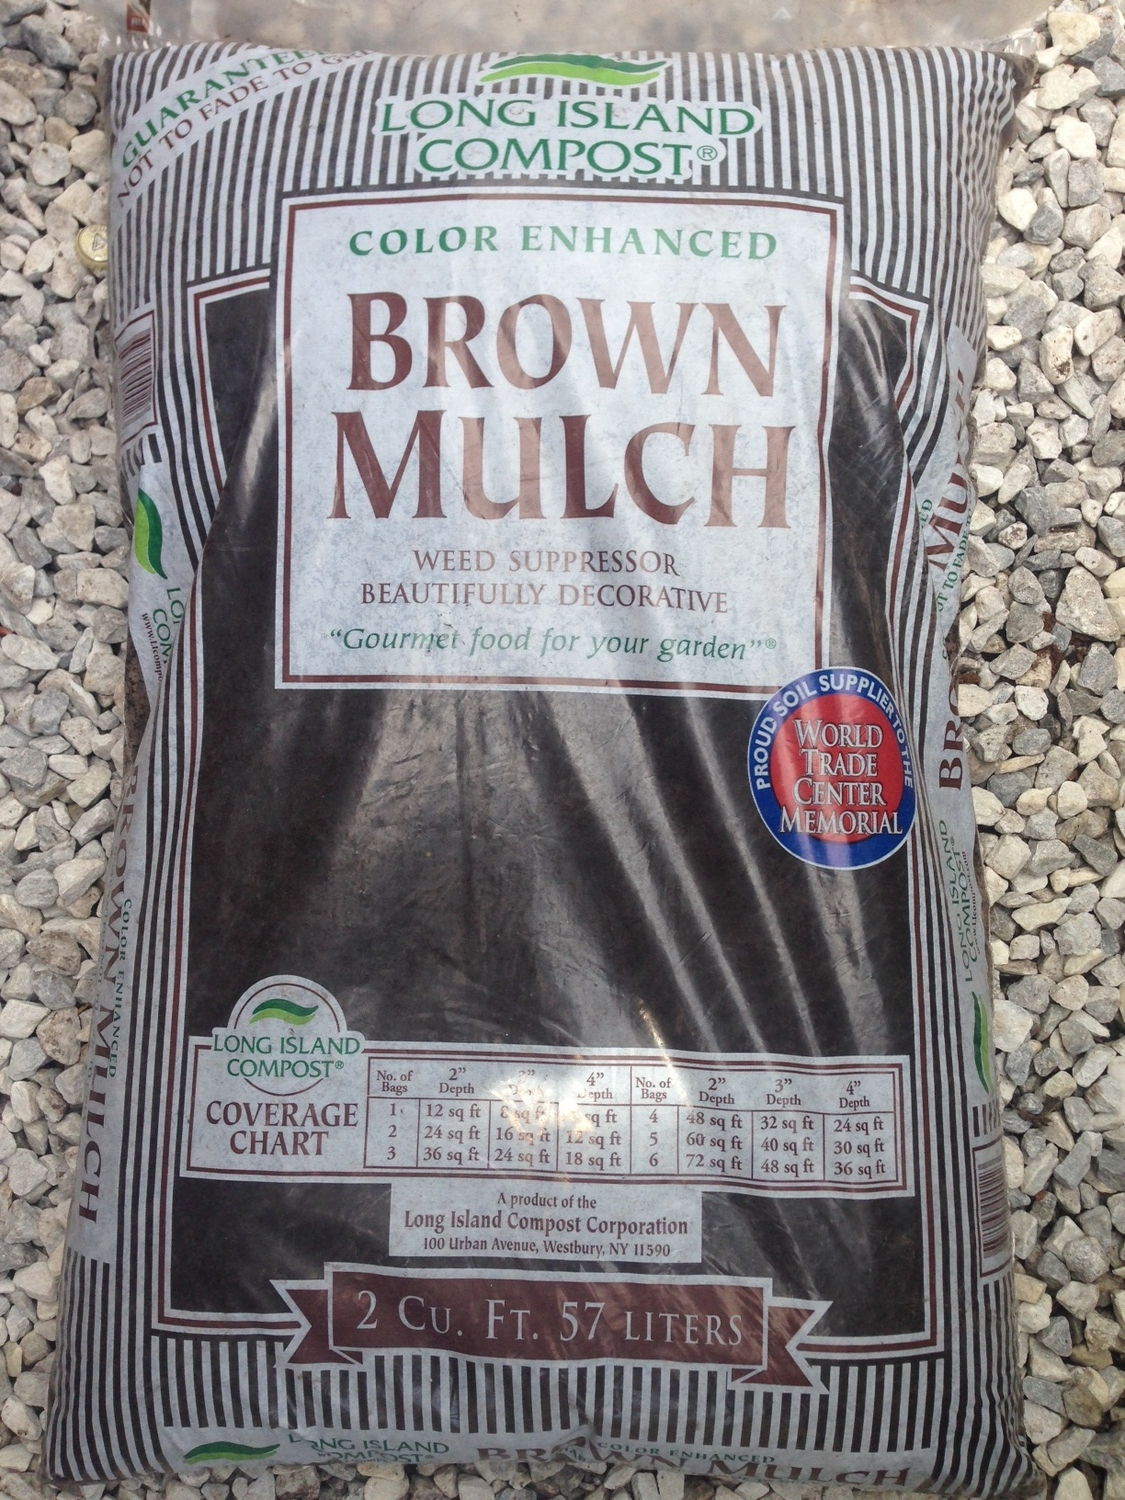 LongIsland Compost Brown Mulch